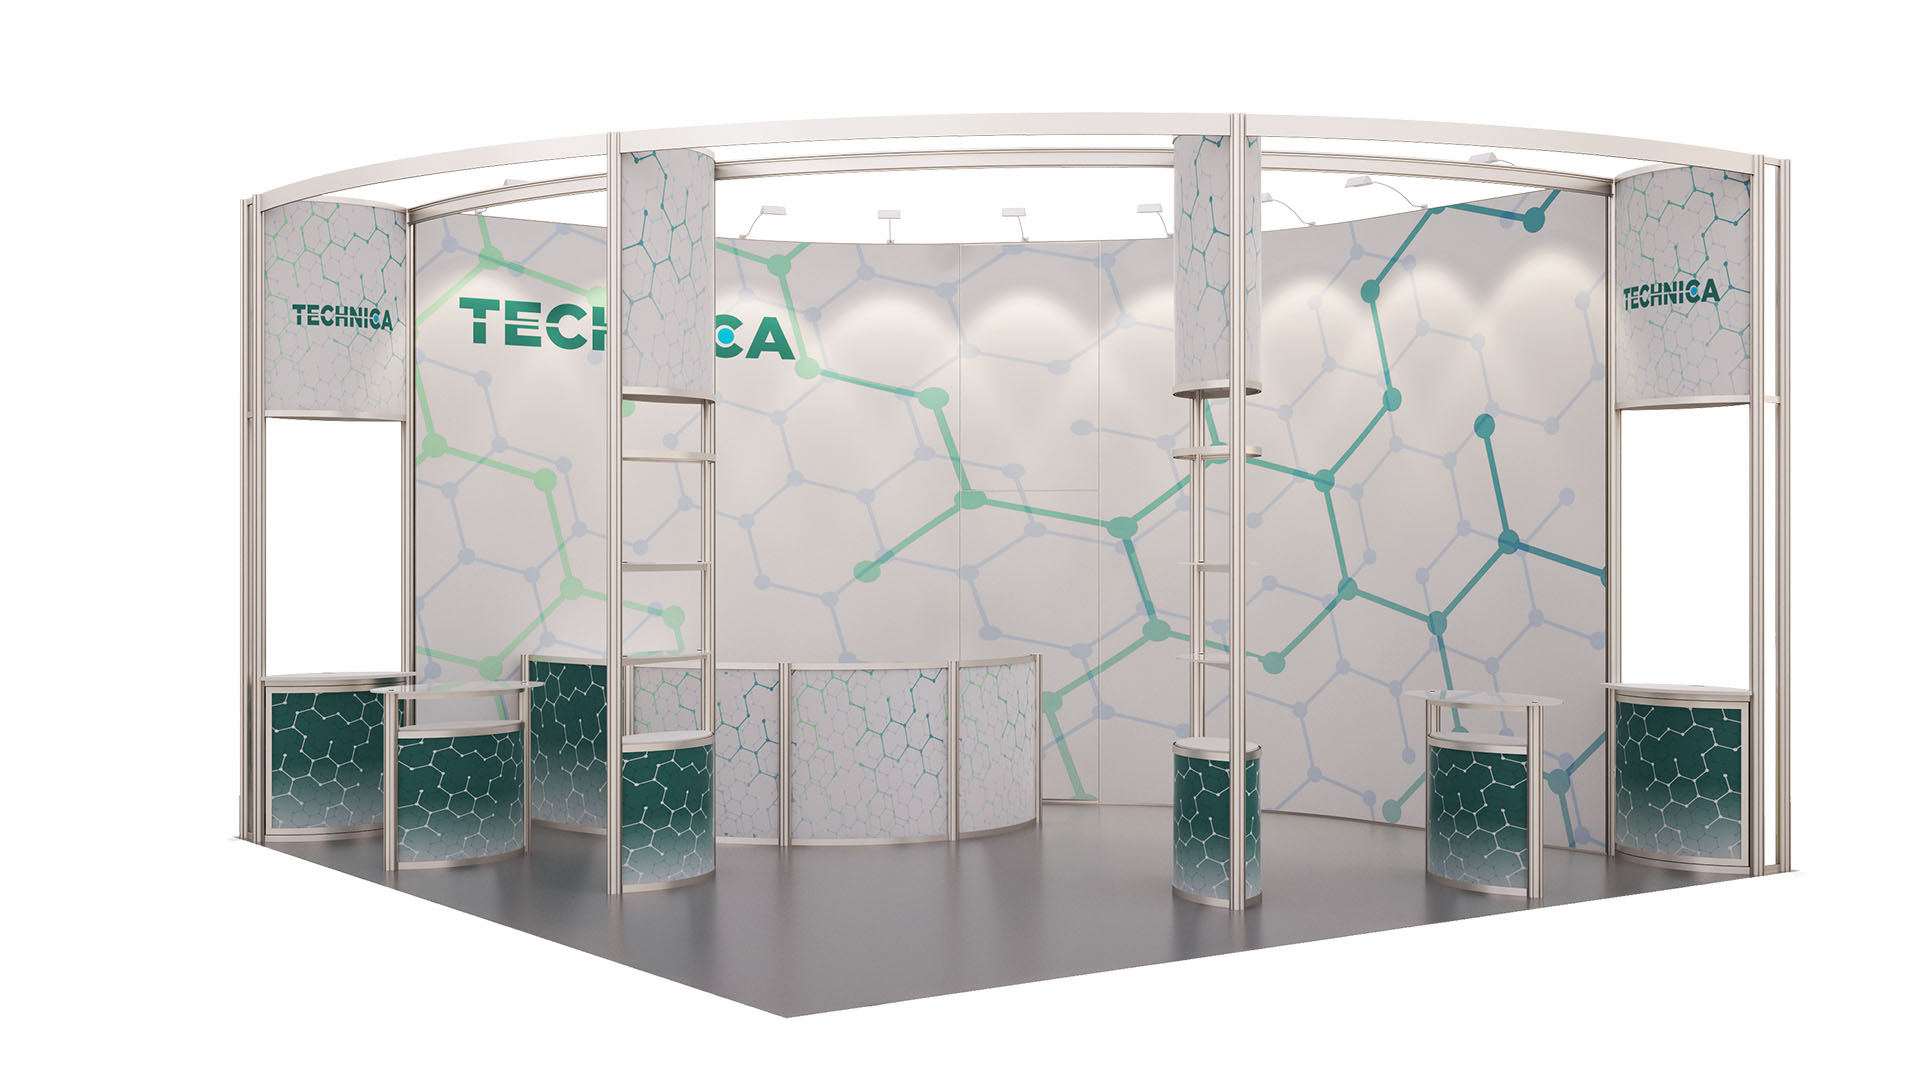 Exhibition-Stands-Design_0009_Stand v1A.jpg